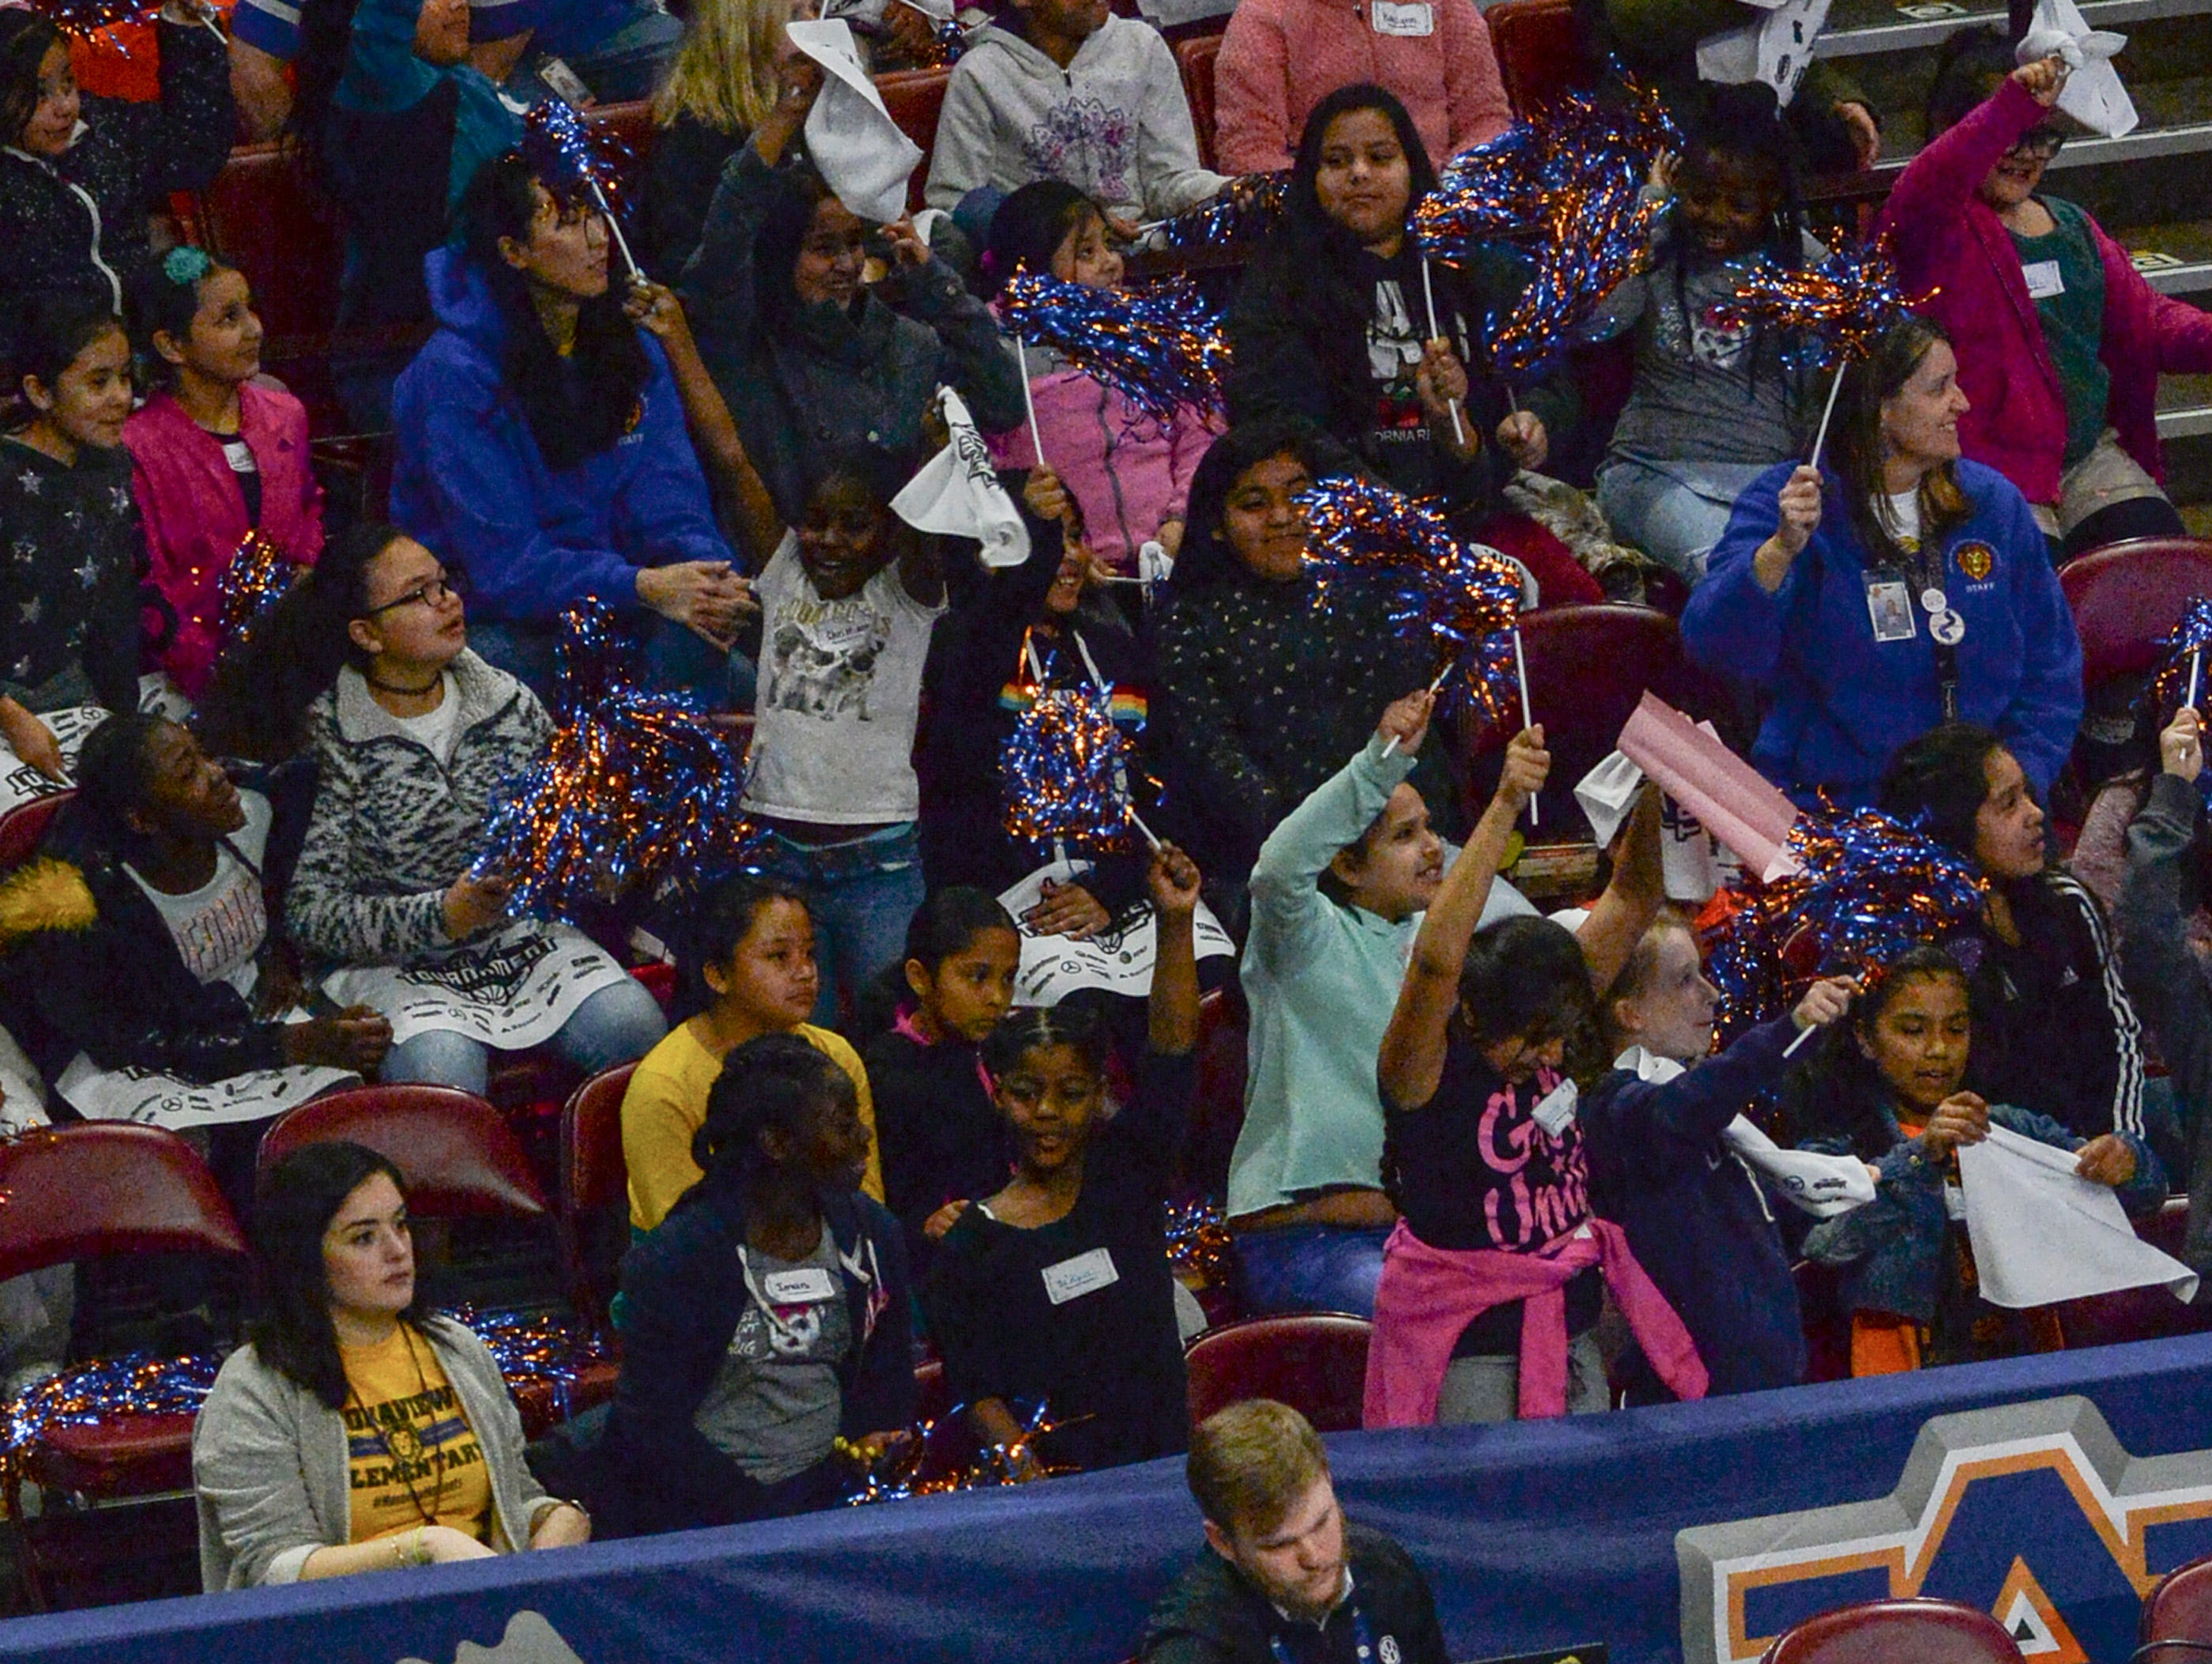 Monaview Elementary children cheer during the first SEC Women's basketball tournament game, Ole Miss and Florida, in Greenville Wednesday. The tournament lasts through Sunday.